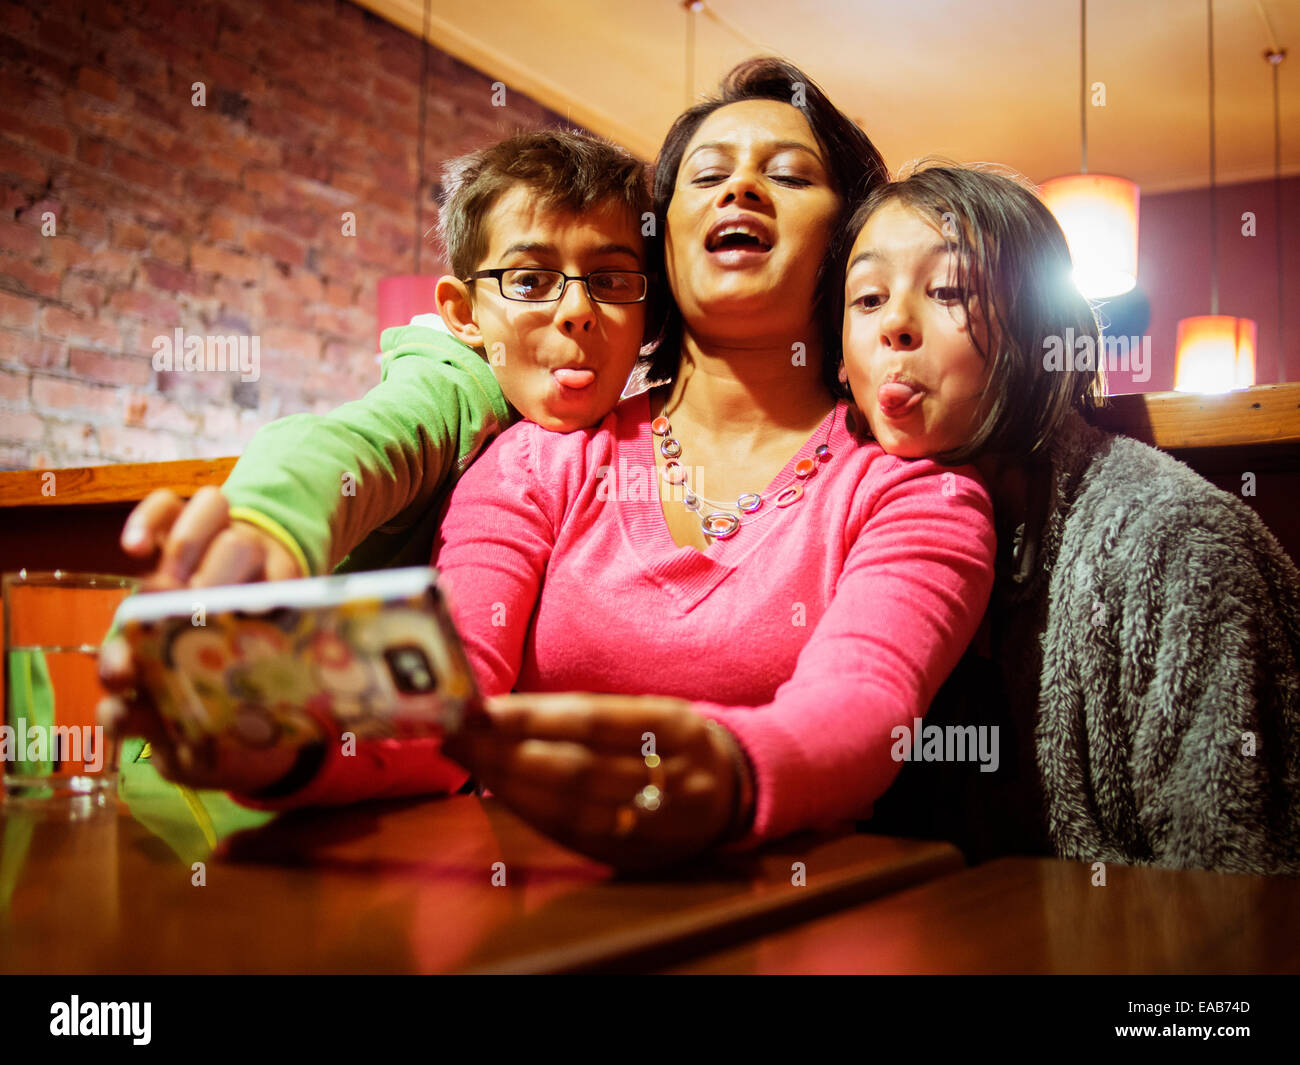 Woman takes selfie on phone. Mother daughter and son. - Stock Image